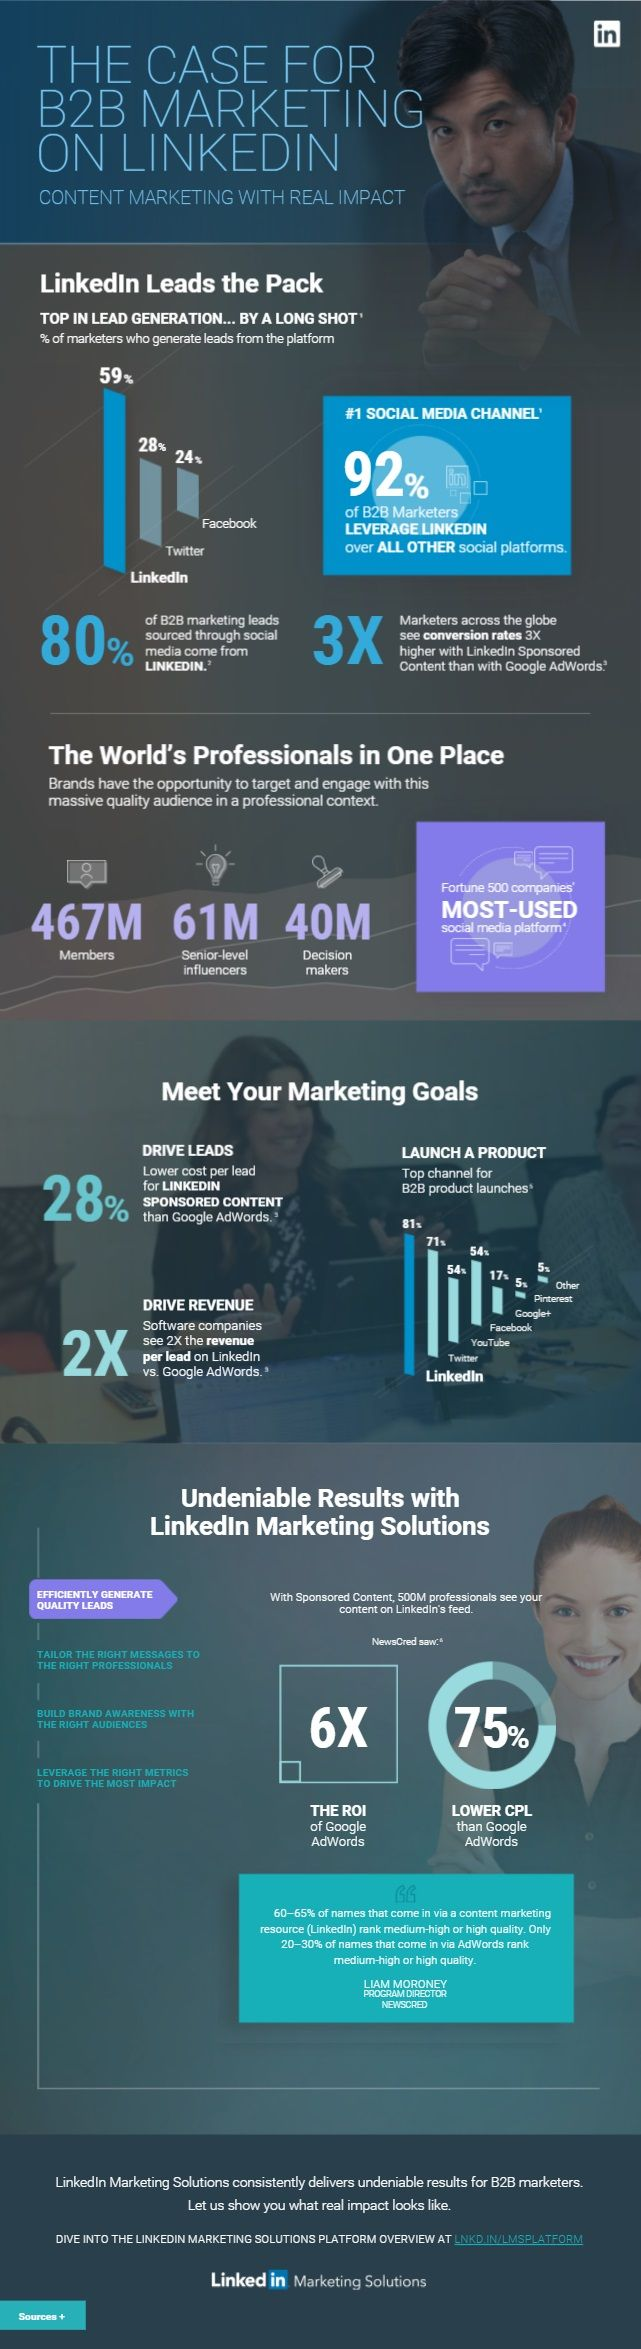 linkedin case revenue strategy It's a great case study: linkedin is one of the largest social networks, and it may  be the  like facebook, linkedin has turned a profit unlike facebook,  they  have consciously tried to own people's names as an seo strategy.